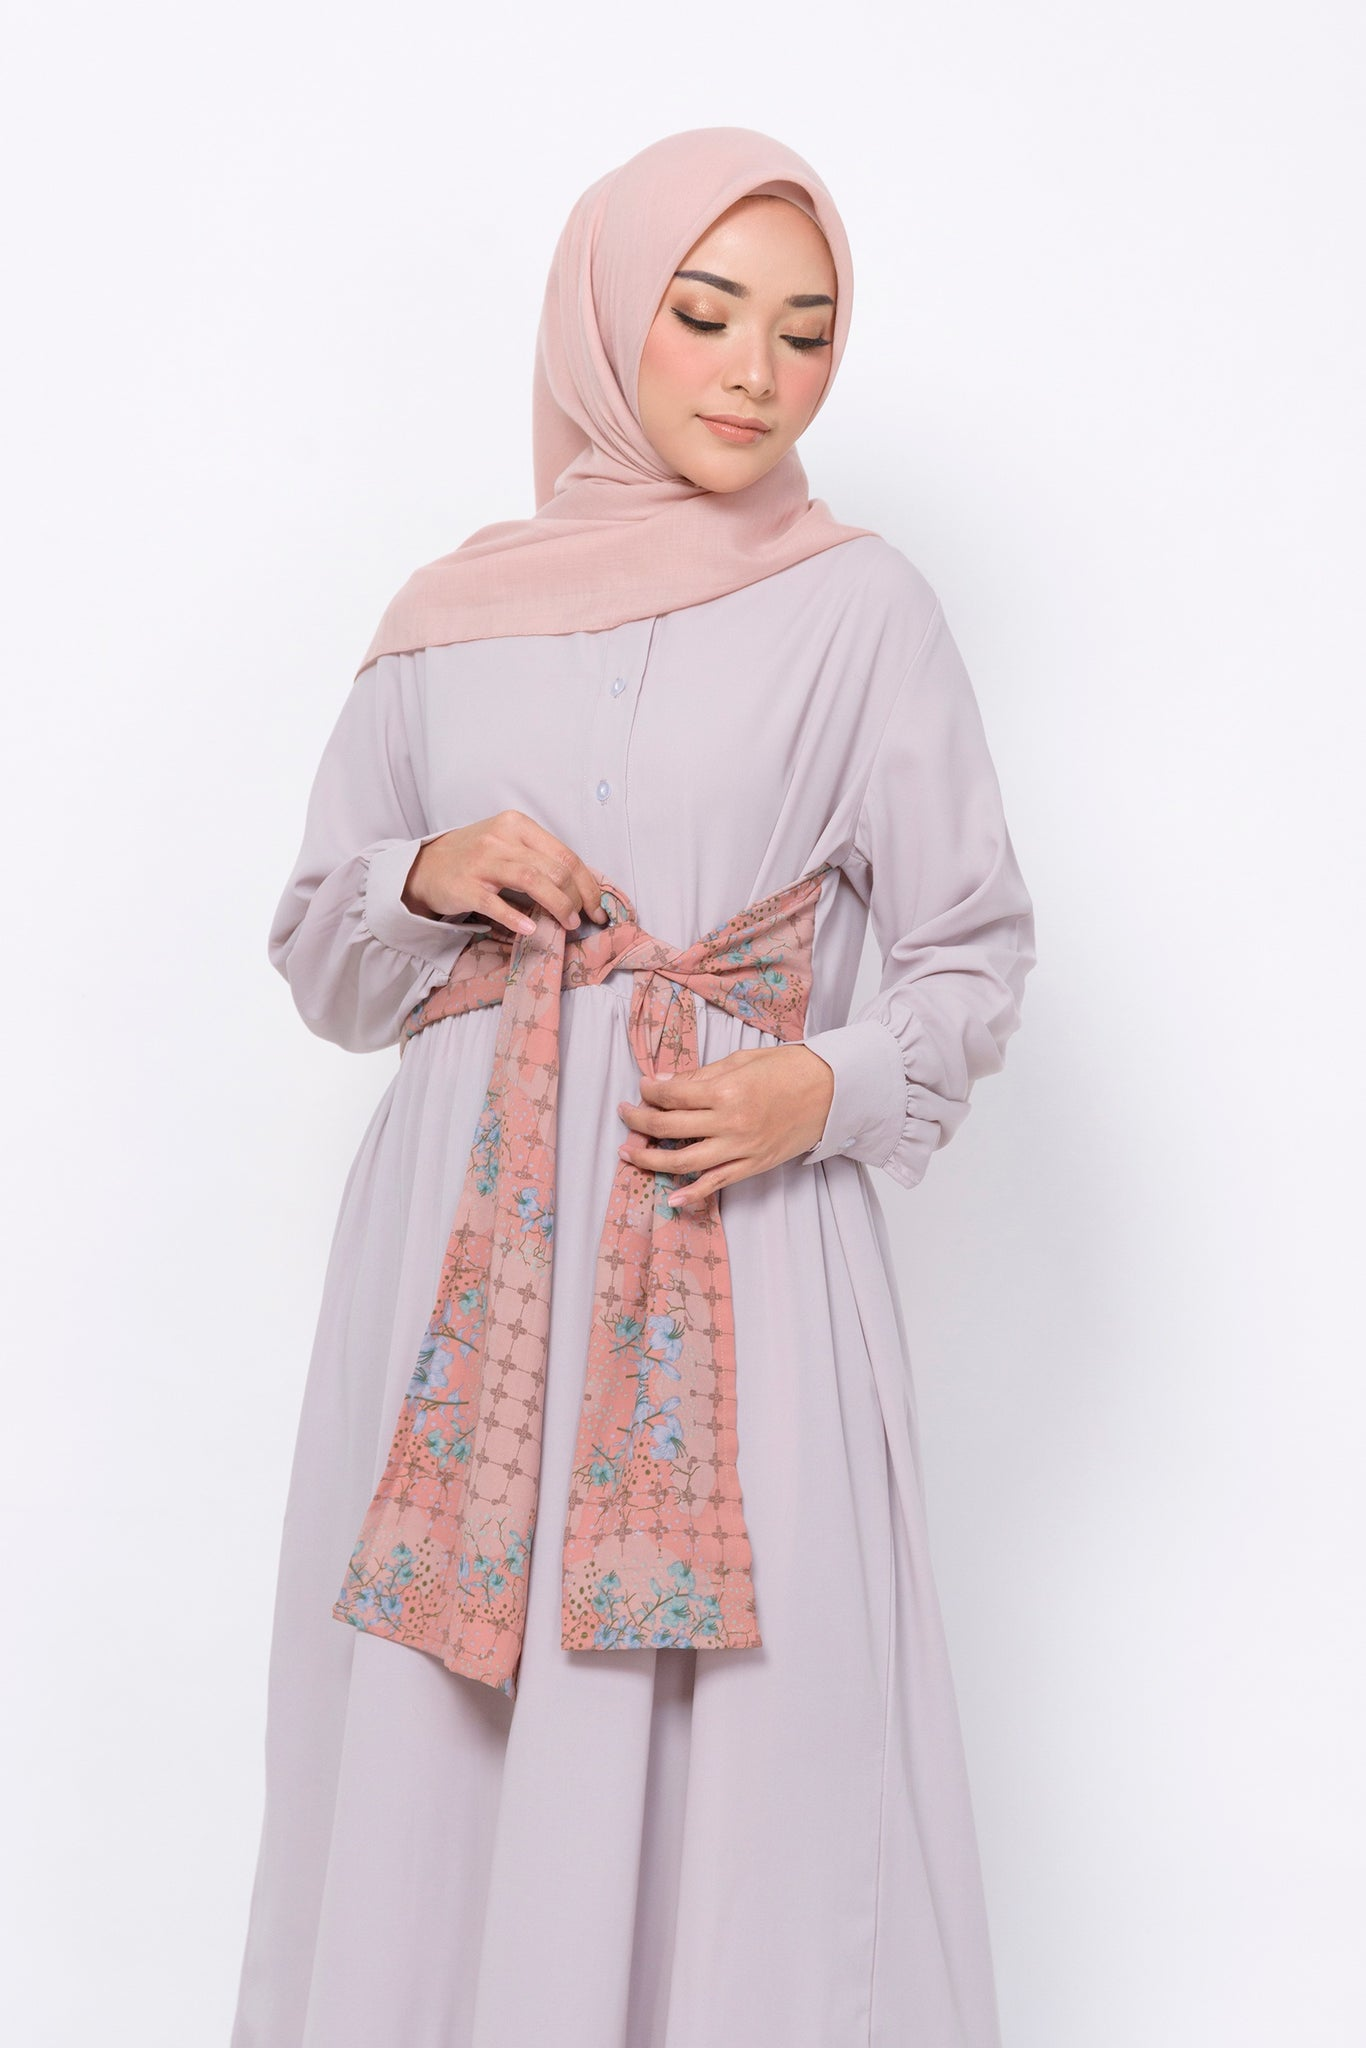 ZM - Kikan Grey Dress - Jelita Indonesia - Edisi Pulau Bangka